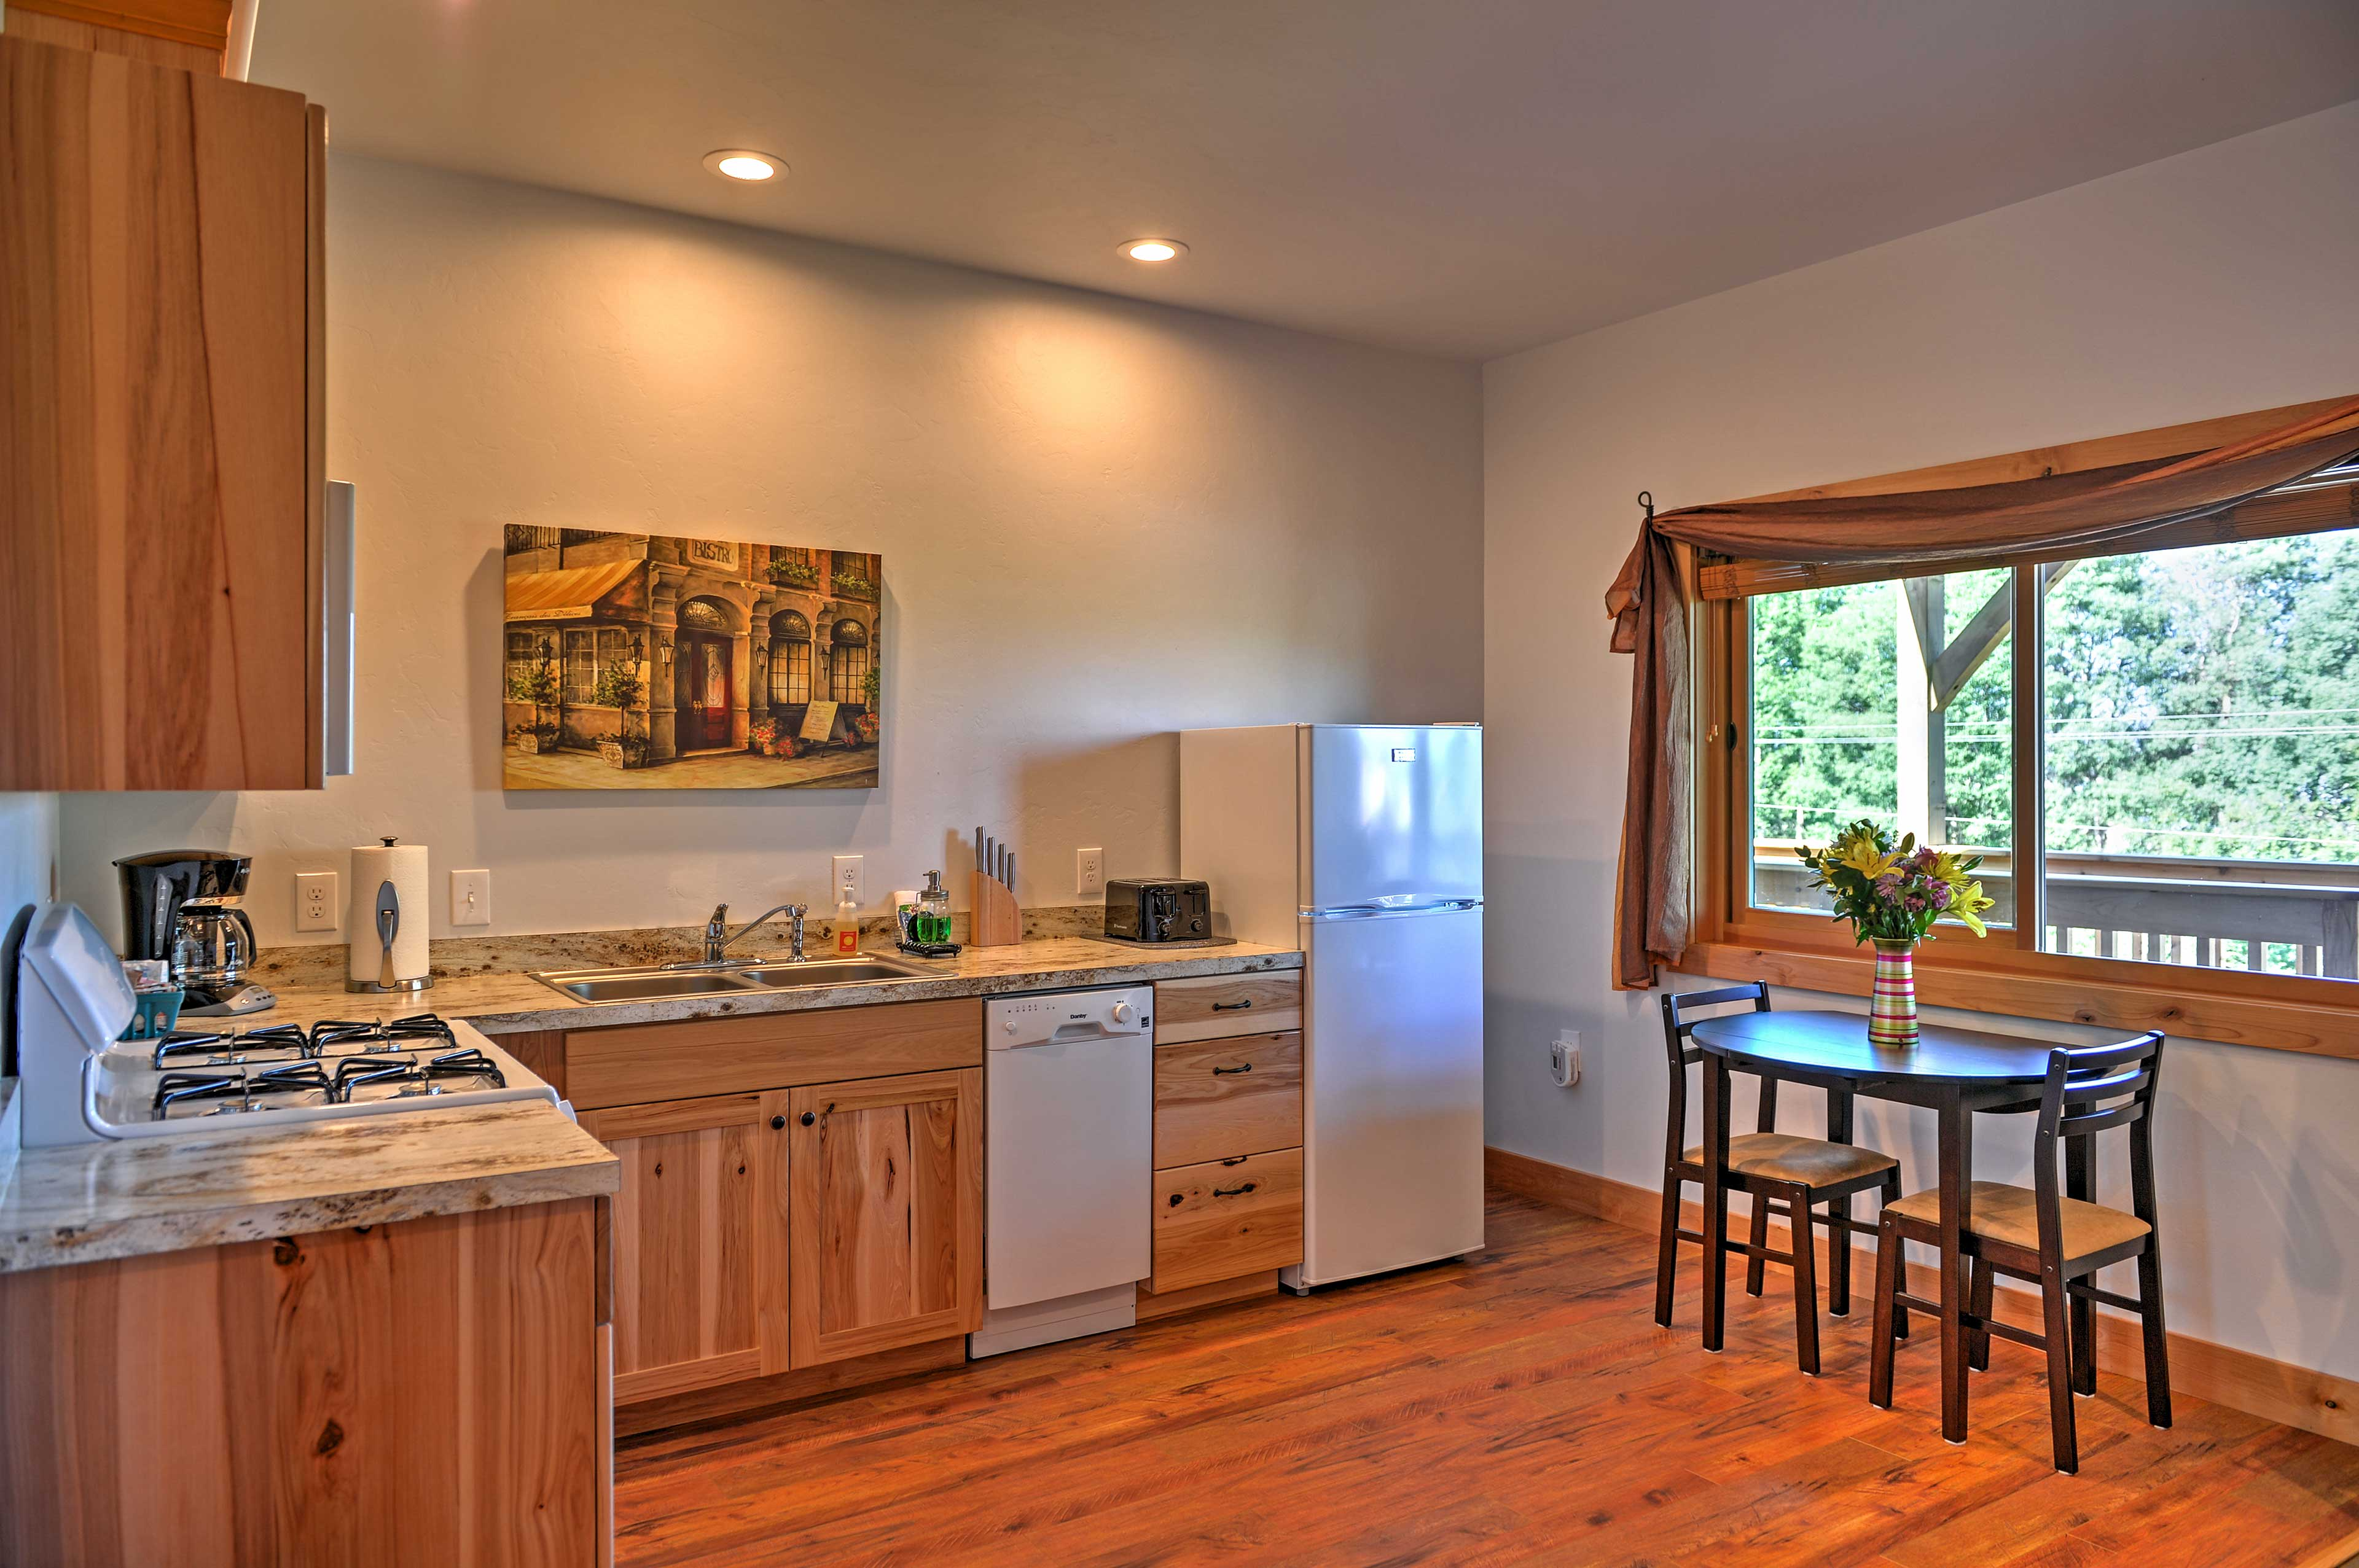 The 'Aerie' unit comfortably accommodates 2 for a romantic mountain getaway.